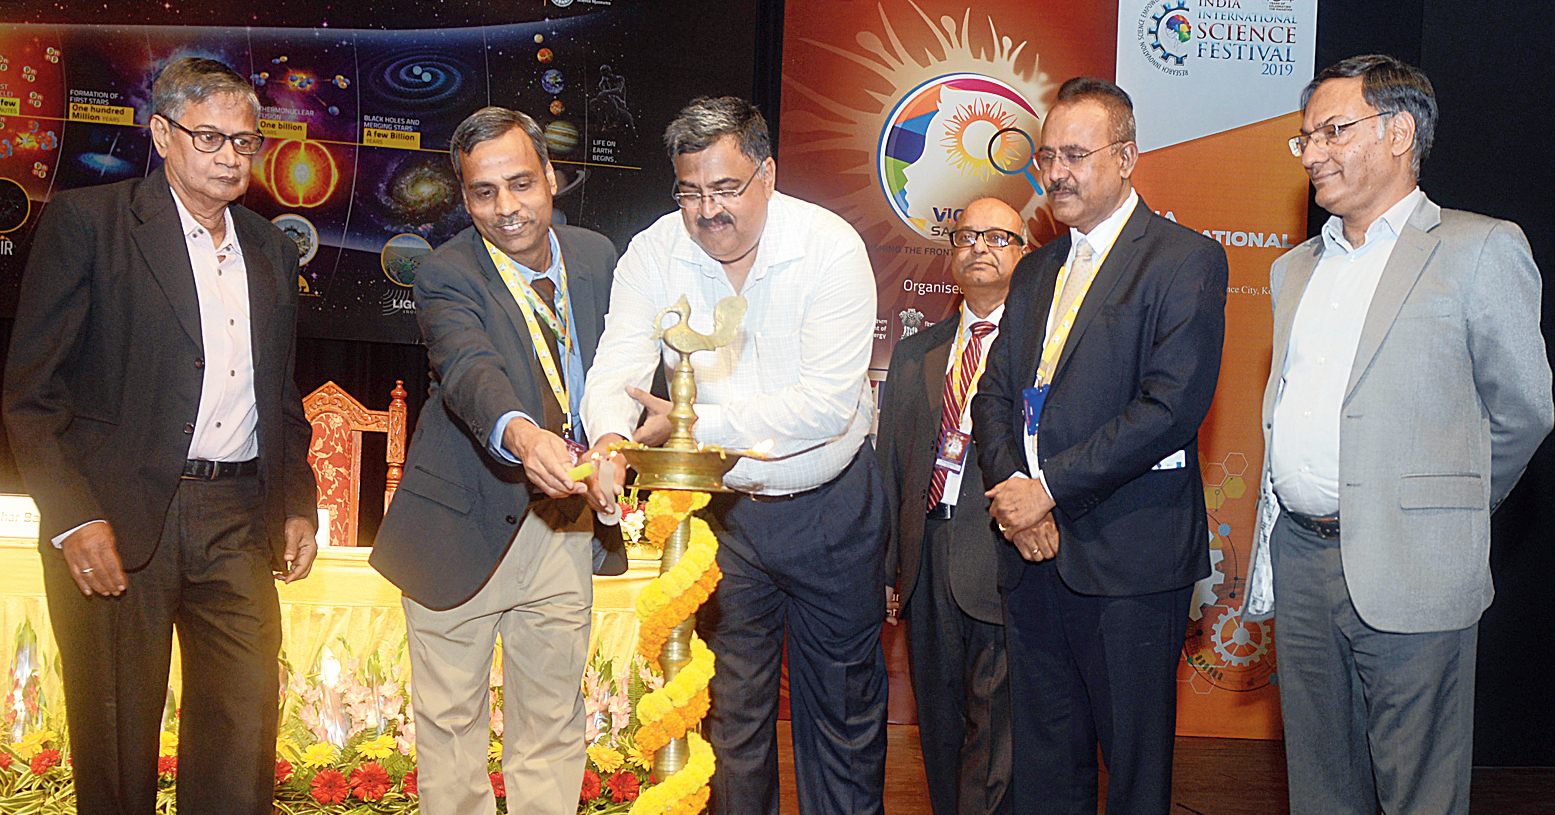 Union science and technology secretary Asutosh Sharma (extreme right) at the inauguration of Vigyan Samagam on Monday.